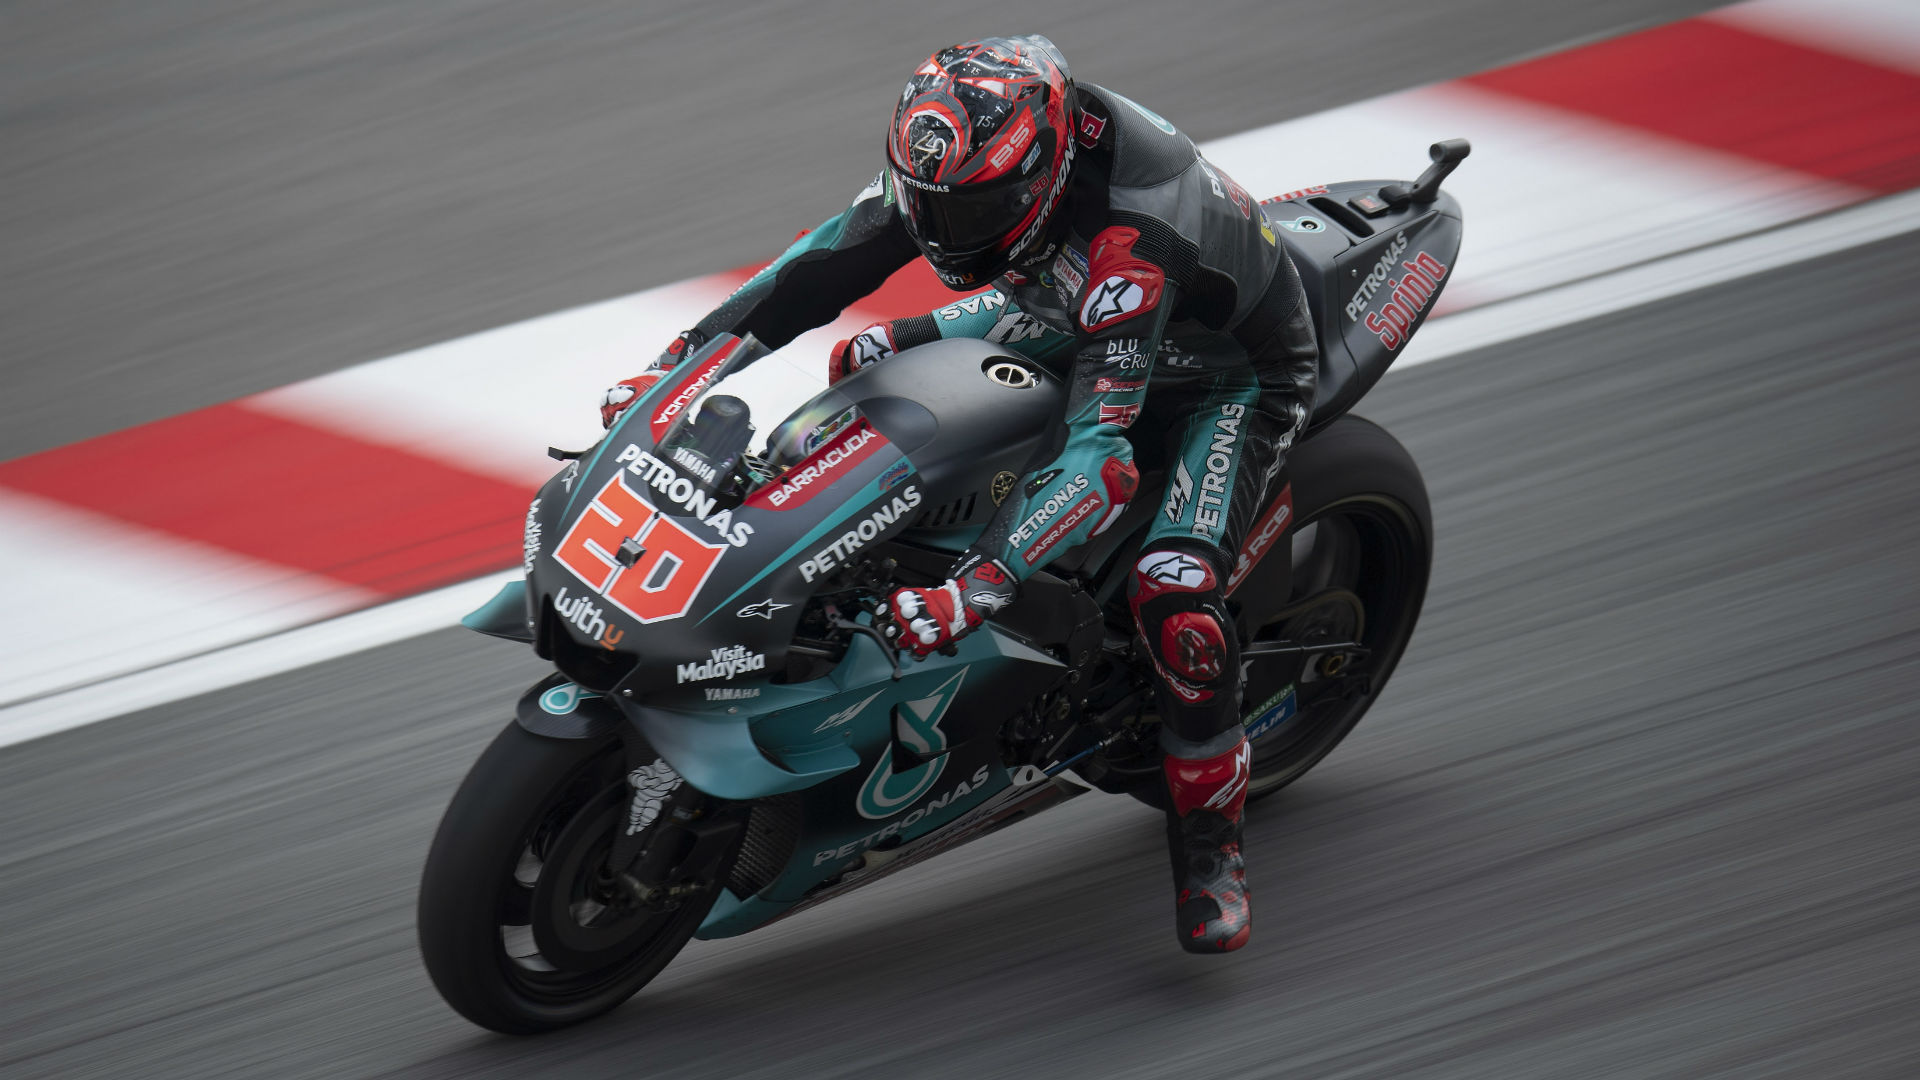 Quartararo leads Yamaha front-row lockout, Marquez crashes in Sepang